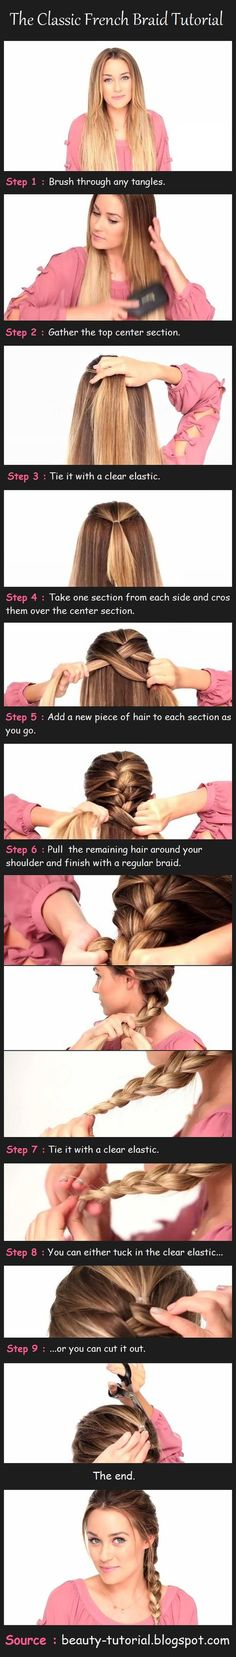 DIY Classic French Braid Hairstyle DIY Fashion Tips / DIY Fashion Projects